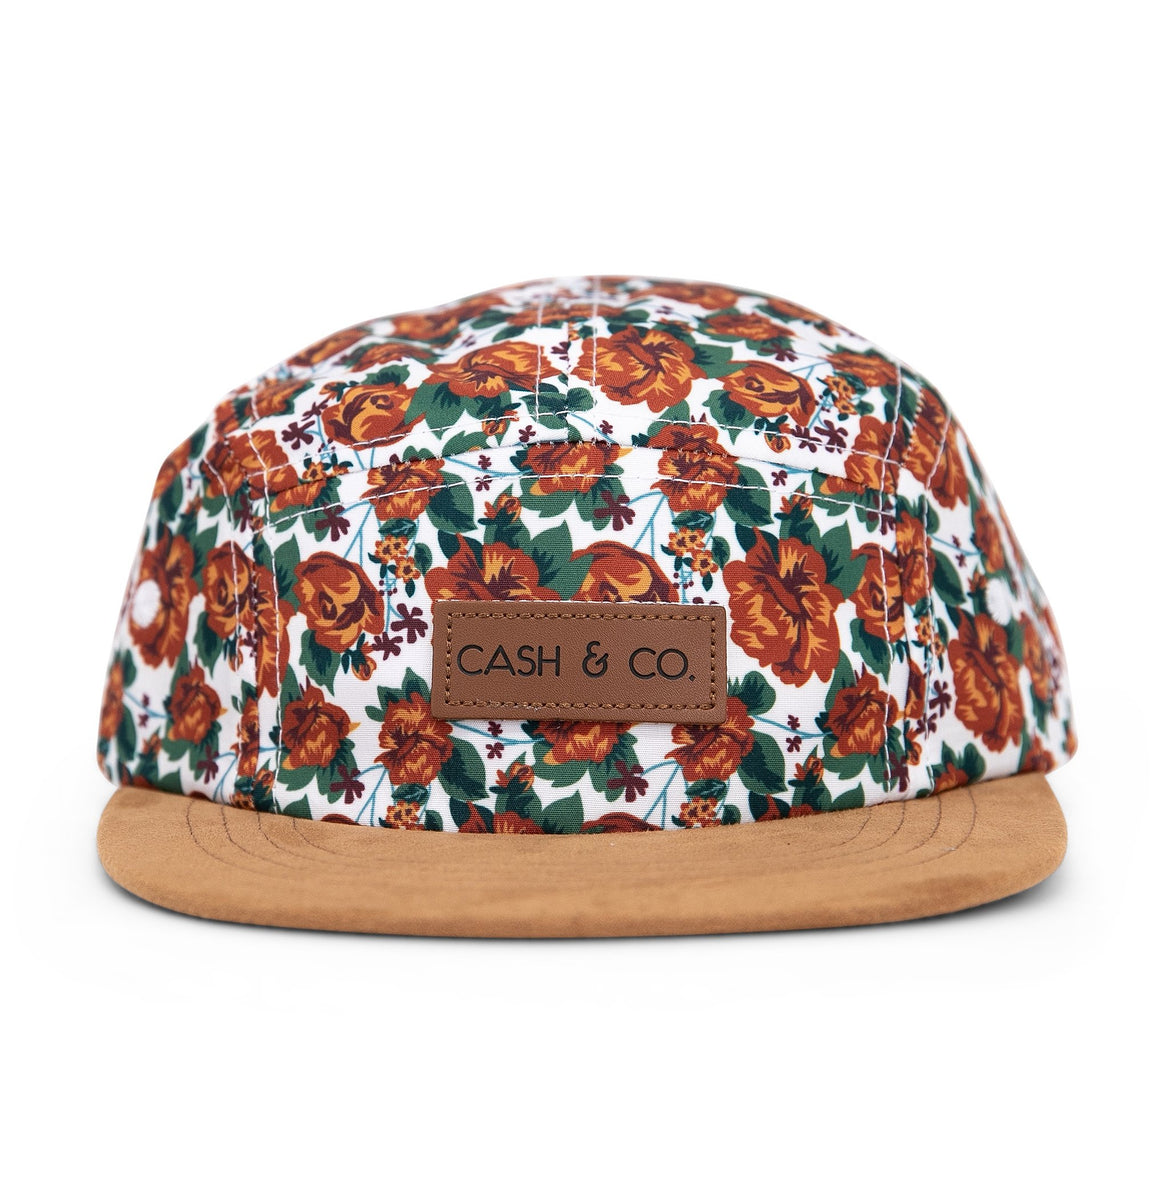 Hawaiian floral print baseball cap with tan suede brim. Adjustable straps. Fits 6 months to adult. Aloha from Cash & Co